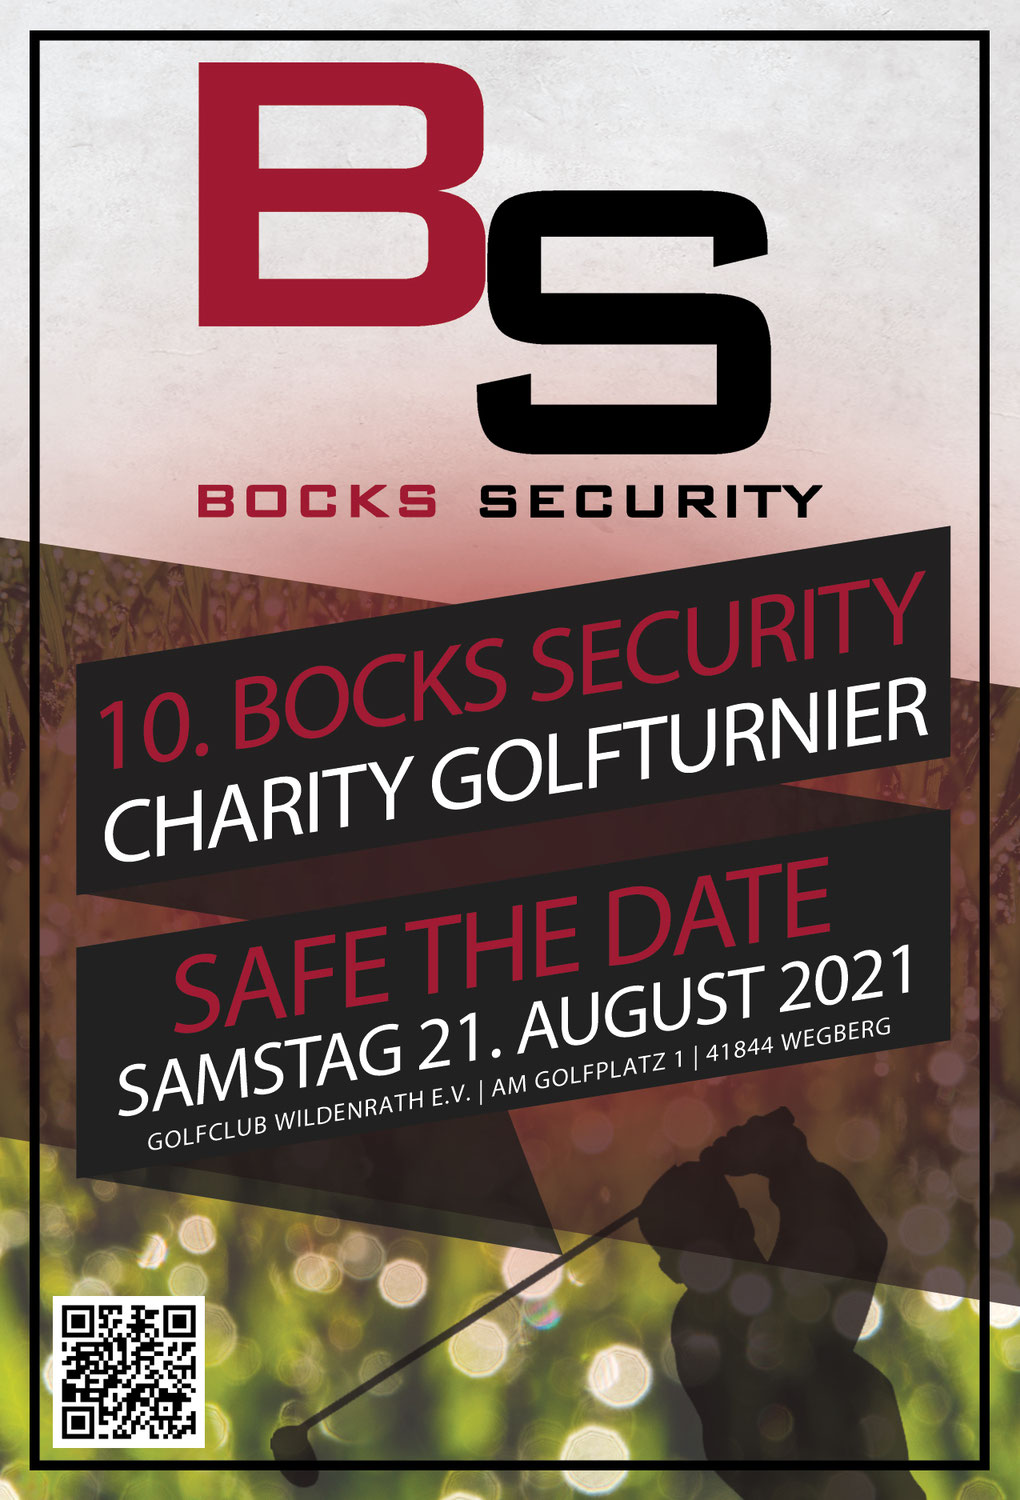 SAFE THE DATE 21.08.2021